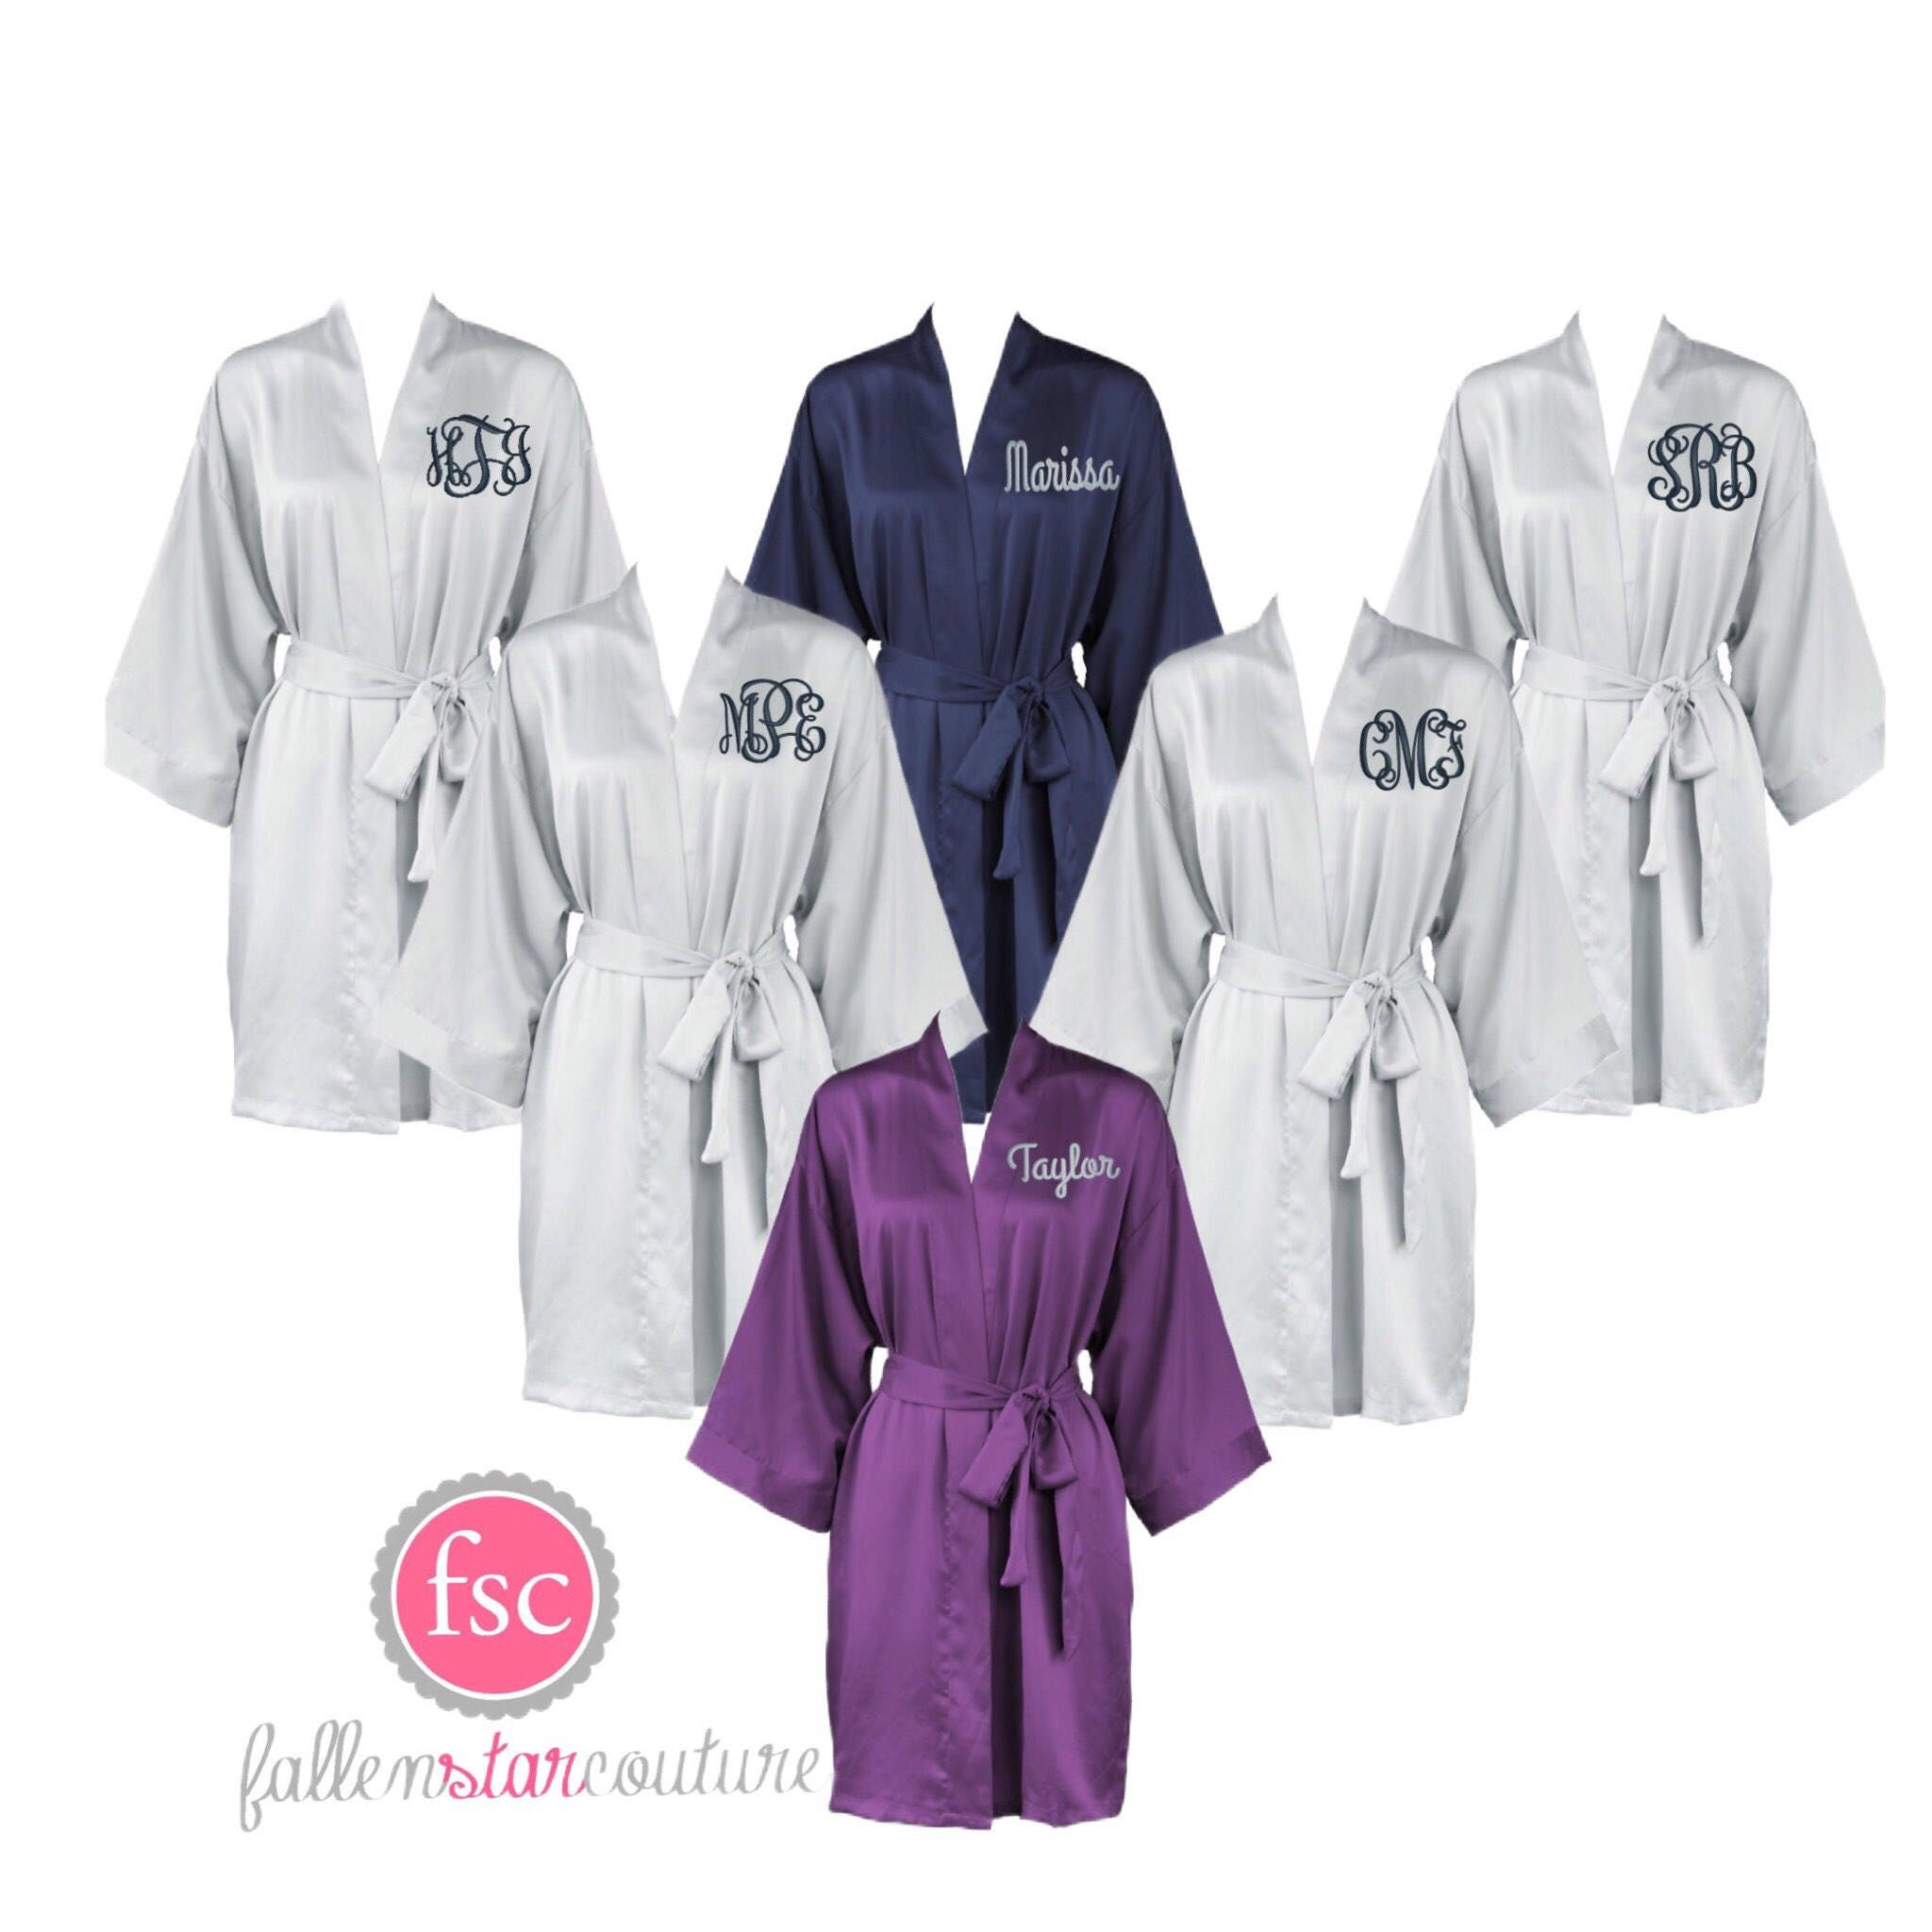 Matte Bridesmaid Robes Bridal Party Robes Bridesmaid Gifts